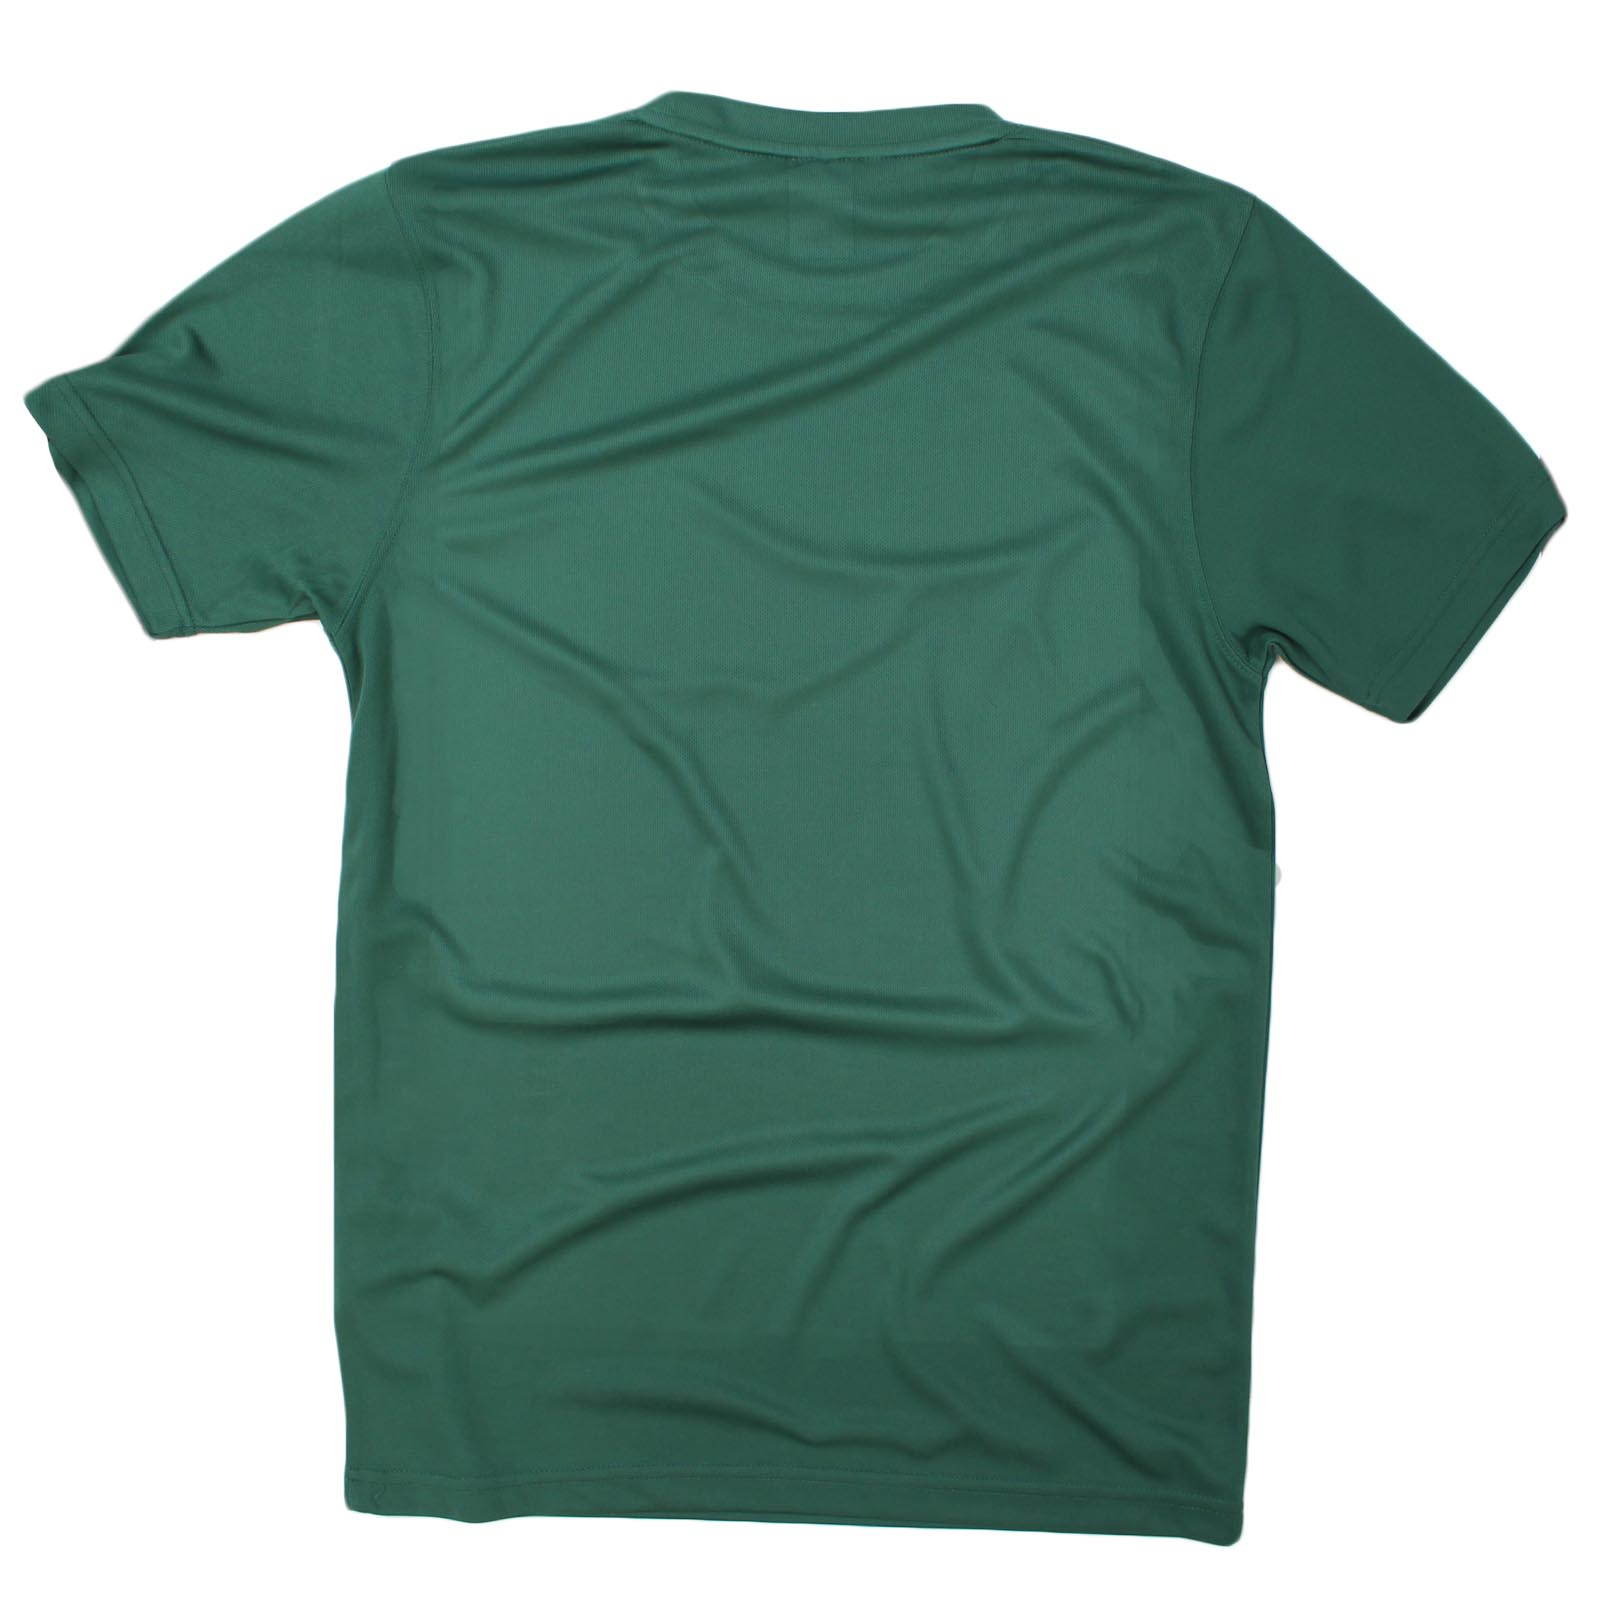 Cycling Yeah My Bike Did Cost More Breathable top T SHIRT DRY FIT T-SHIRT